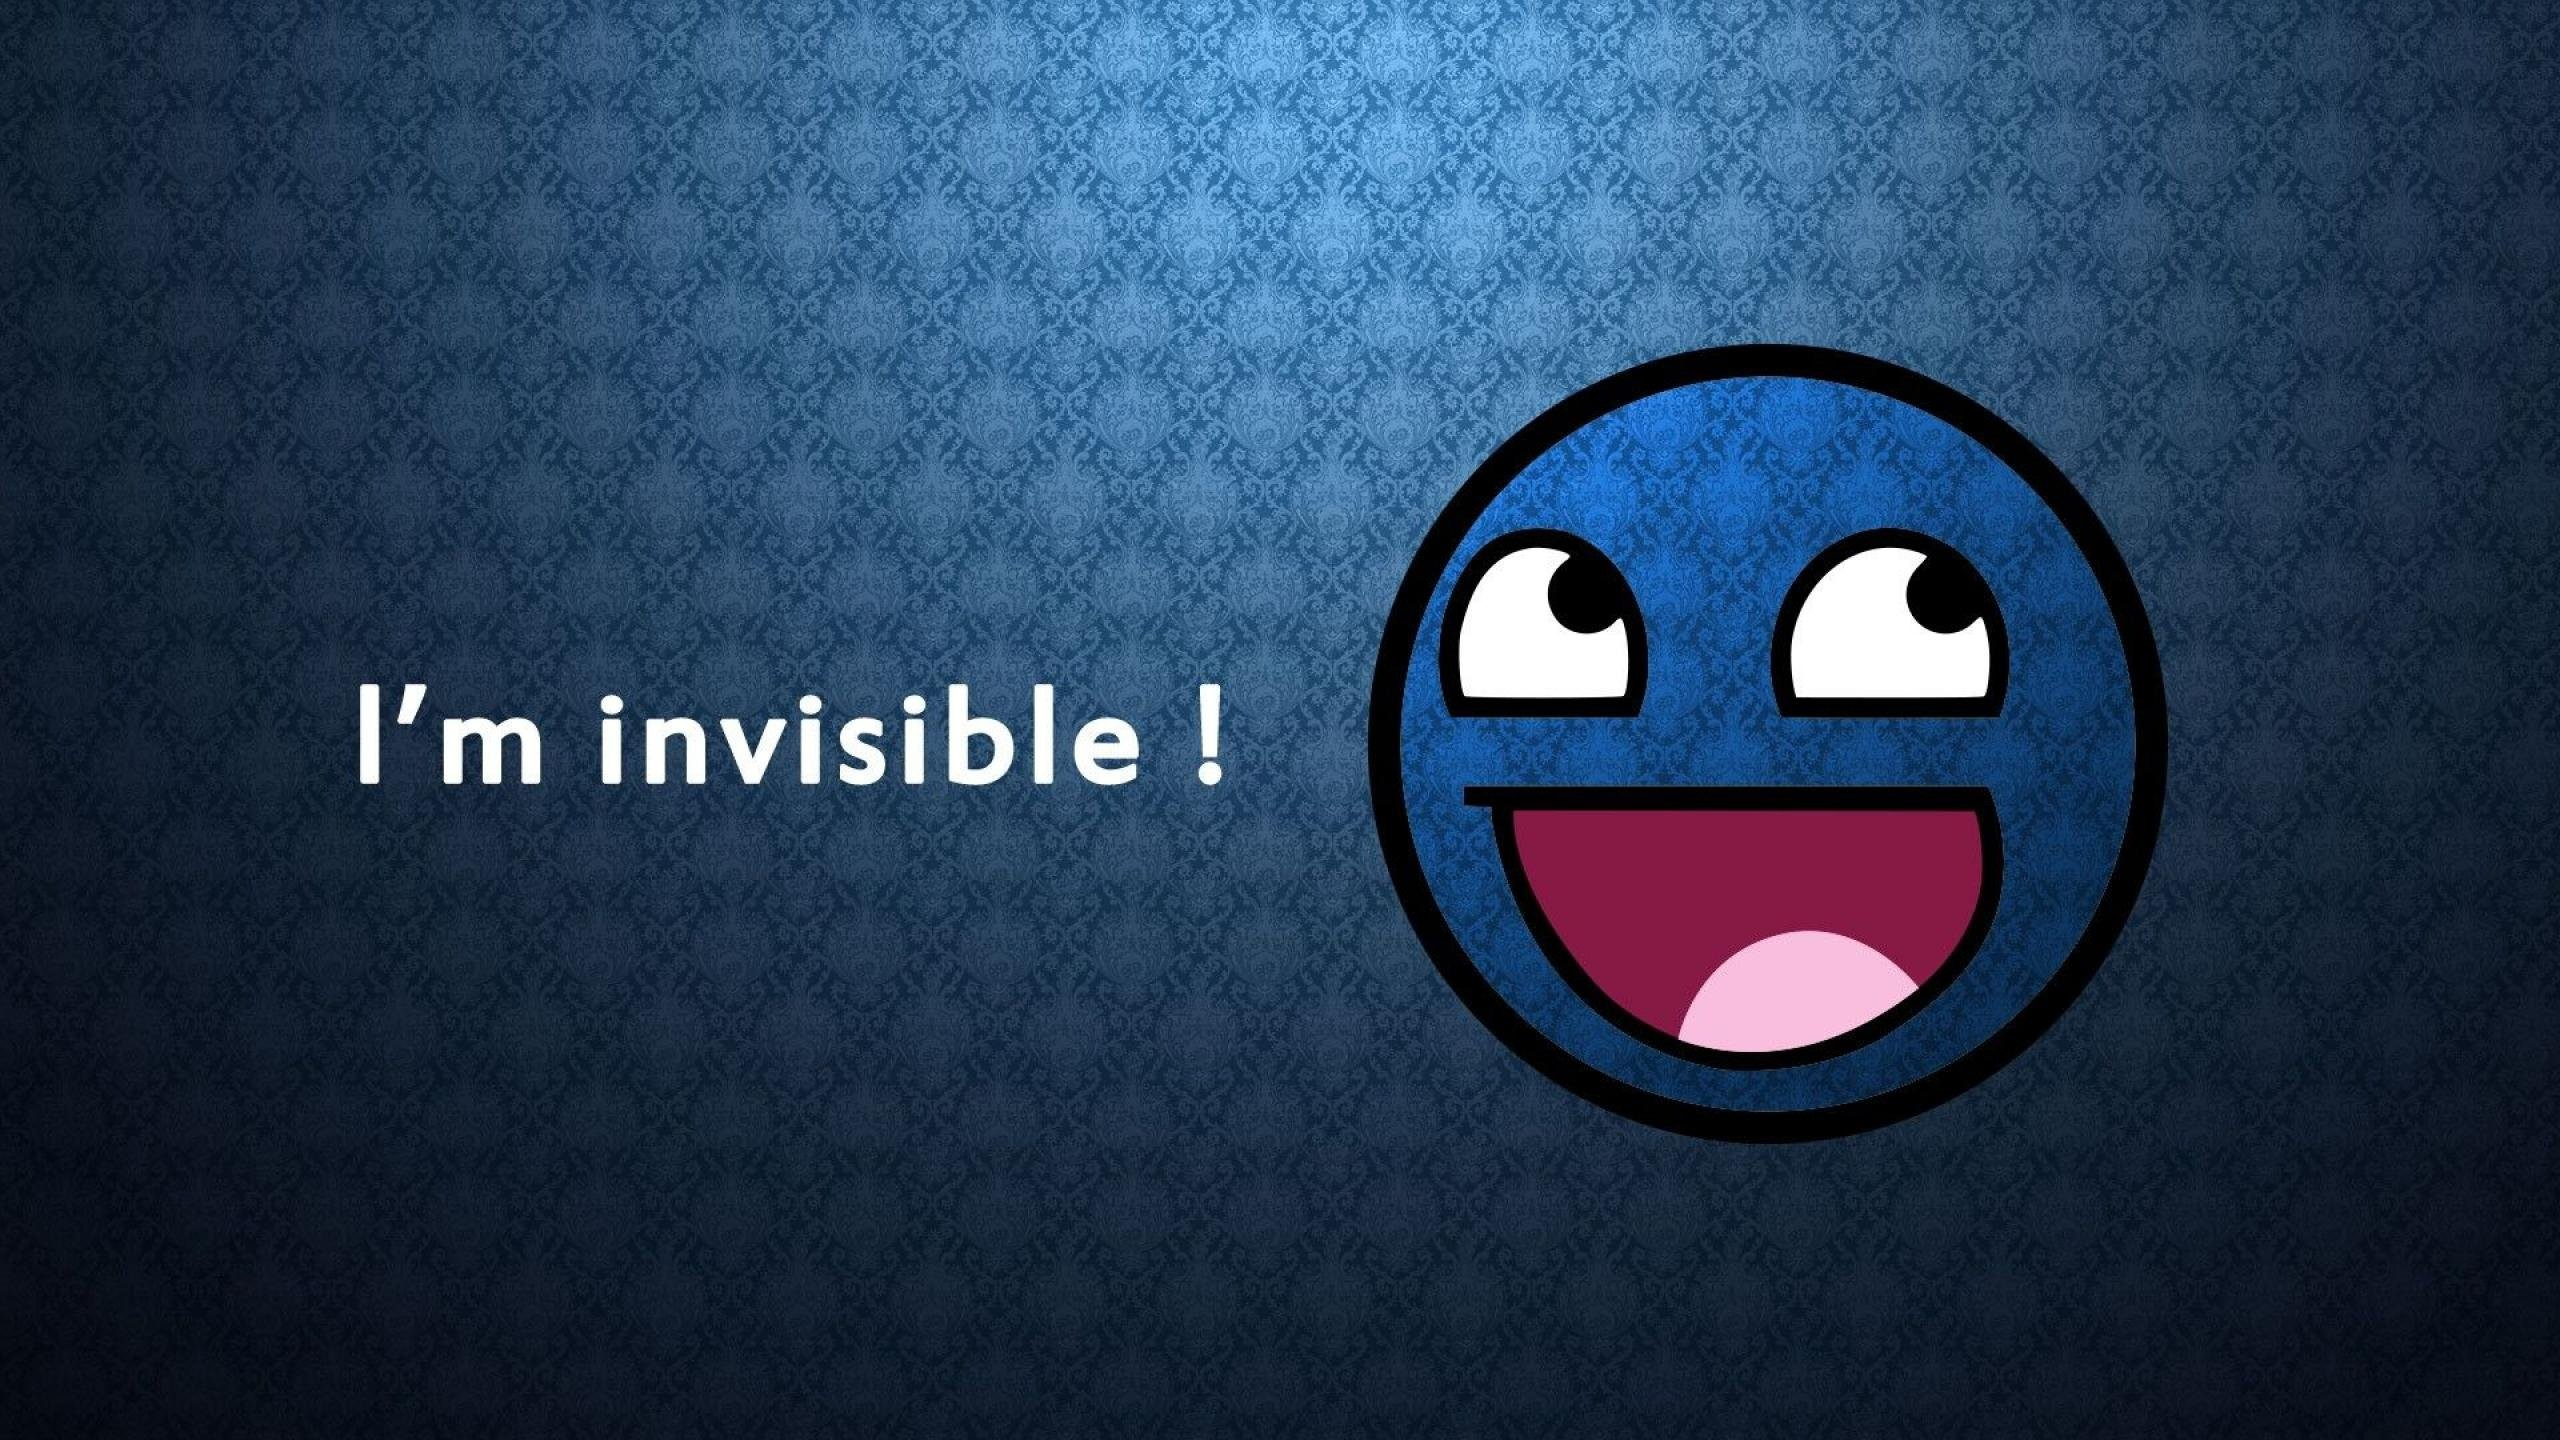 Invisible Awesome Face